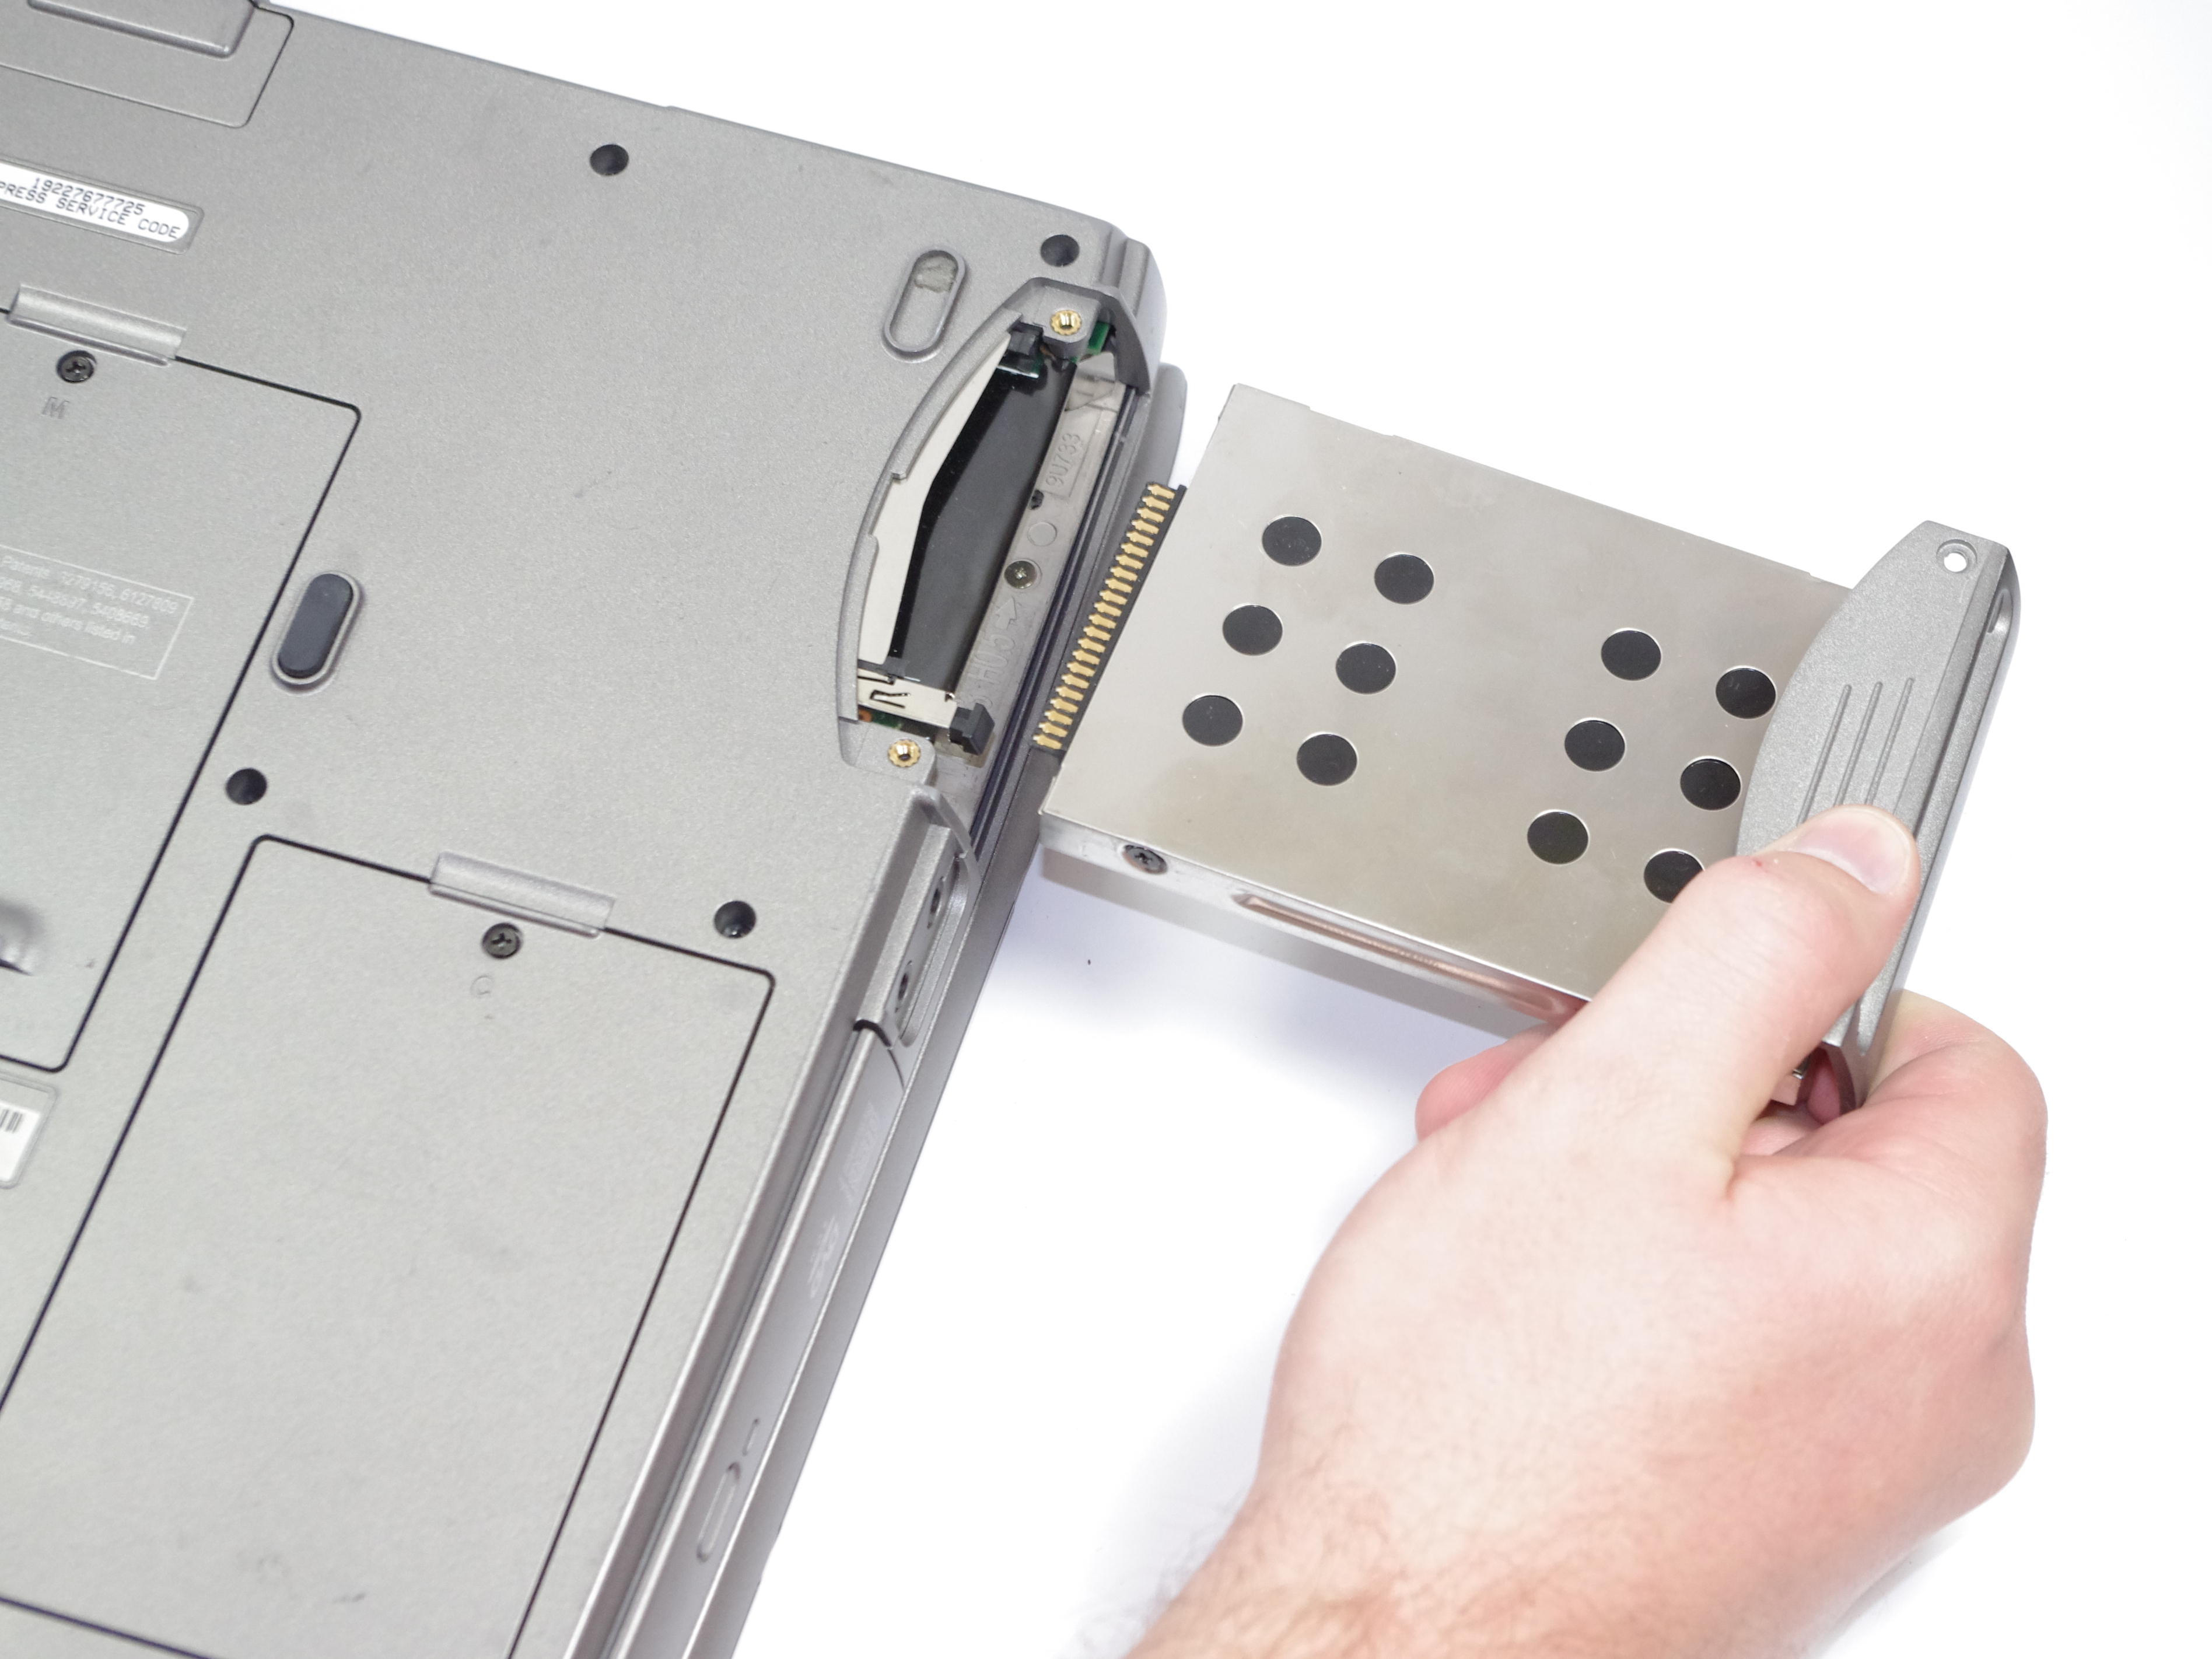 Hard Drive Replacement Instructions